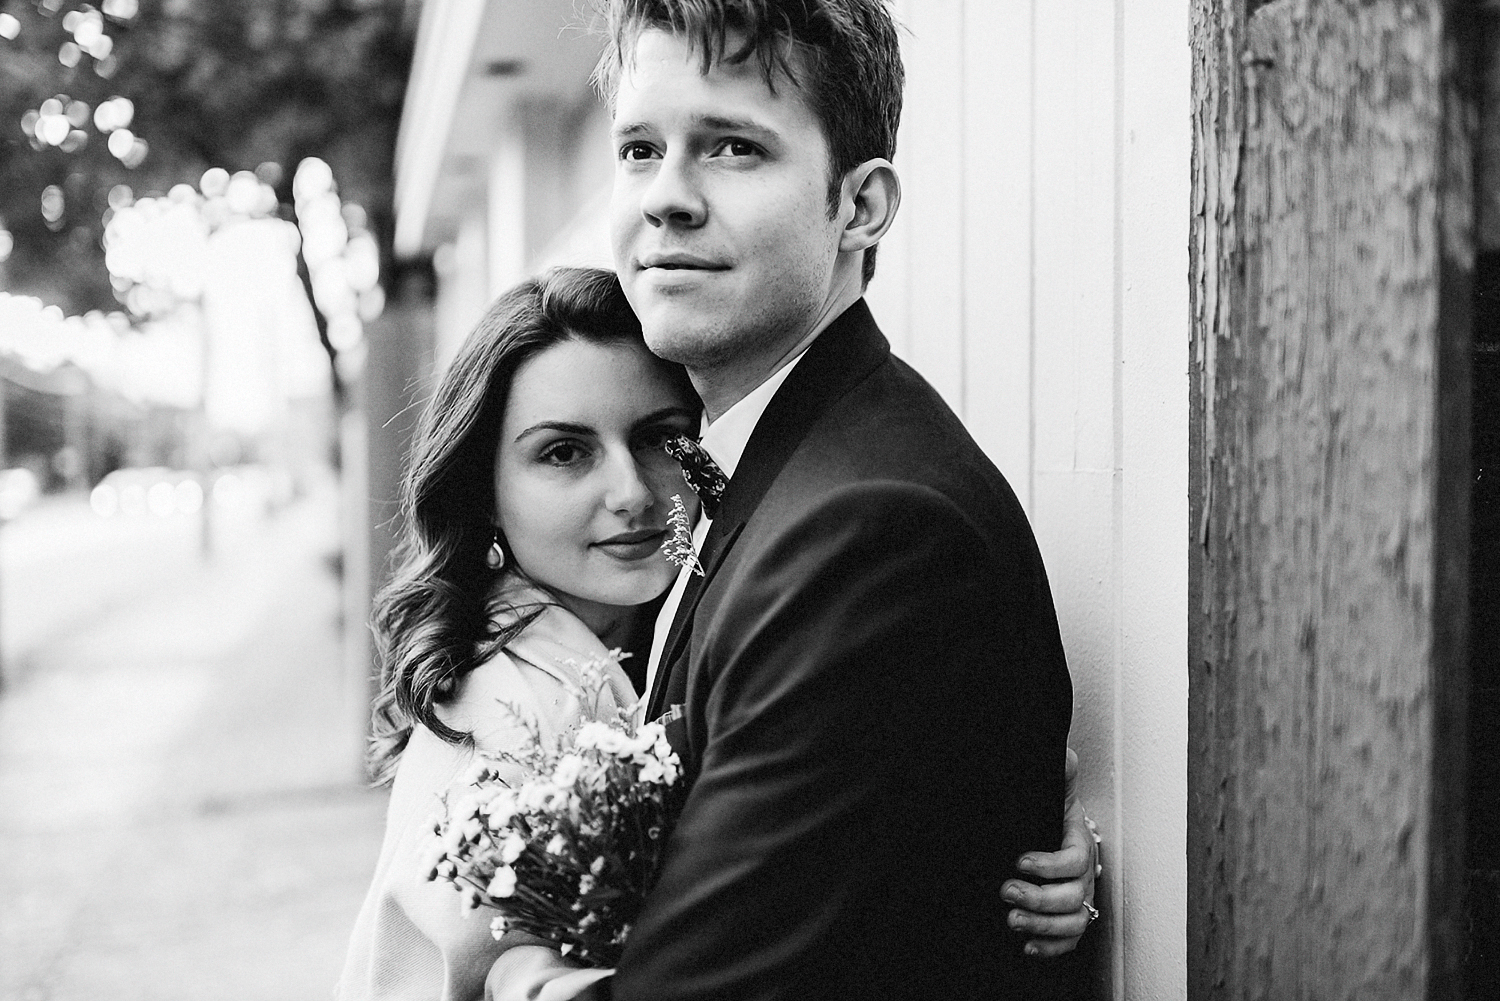 30-Best-Elopement-Photographers-Toronto-Fall-Wedding-Elopement-Modern-Vintage-Hipster-Bride-and-Groom-Sunset-Hug.JPG